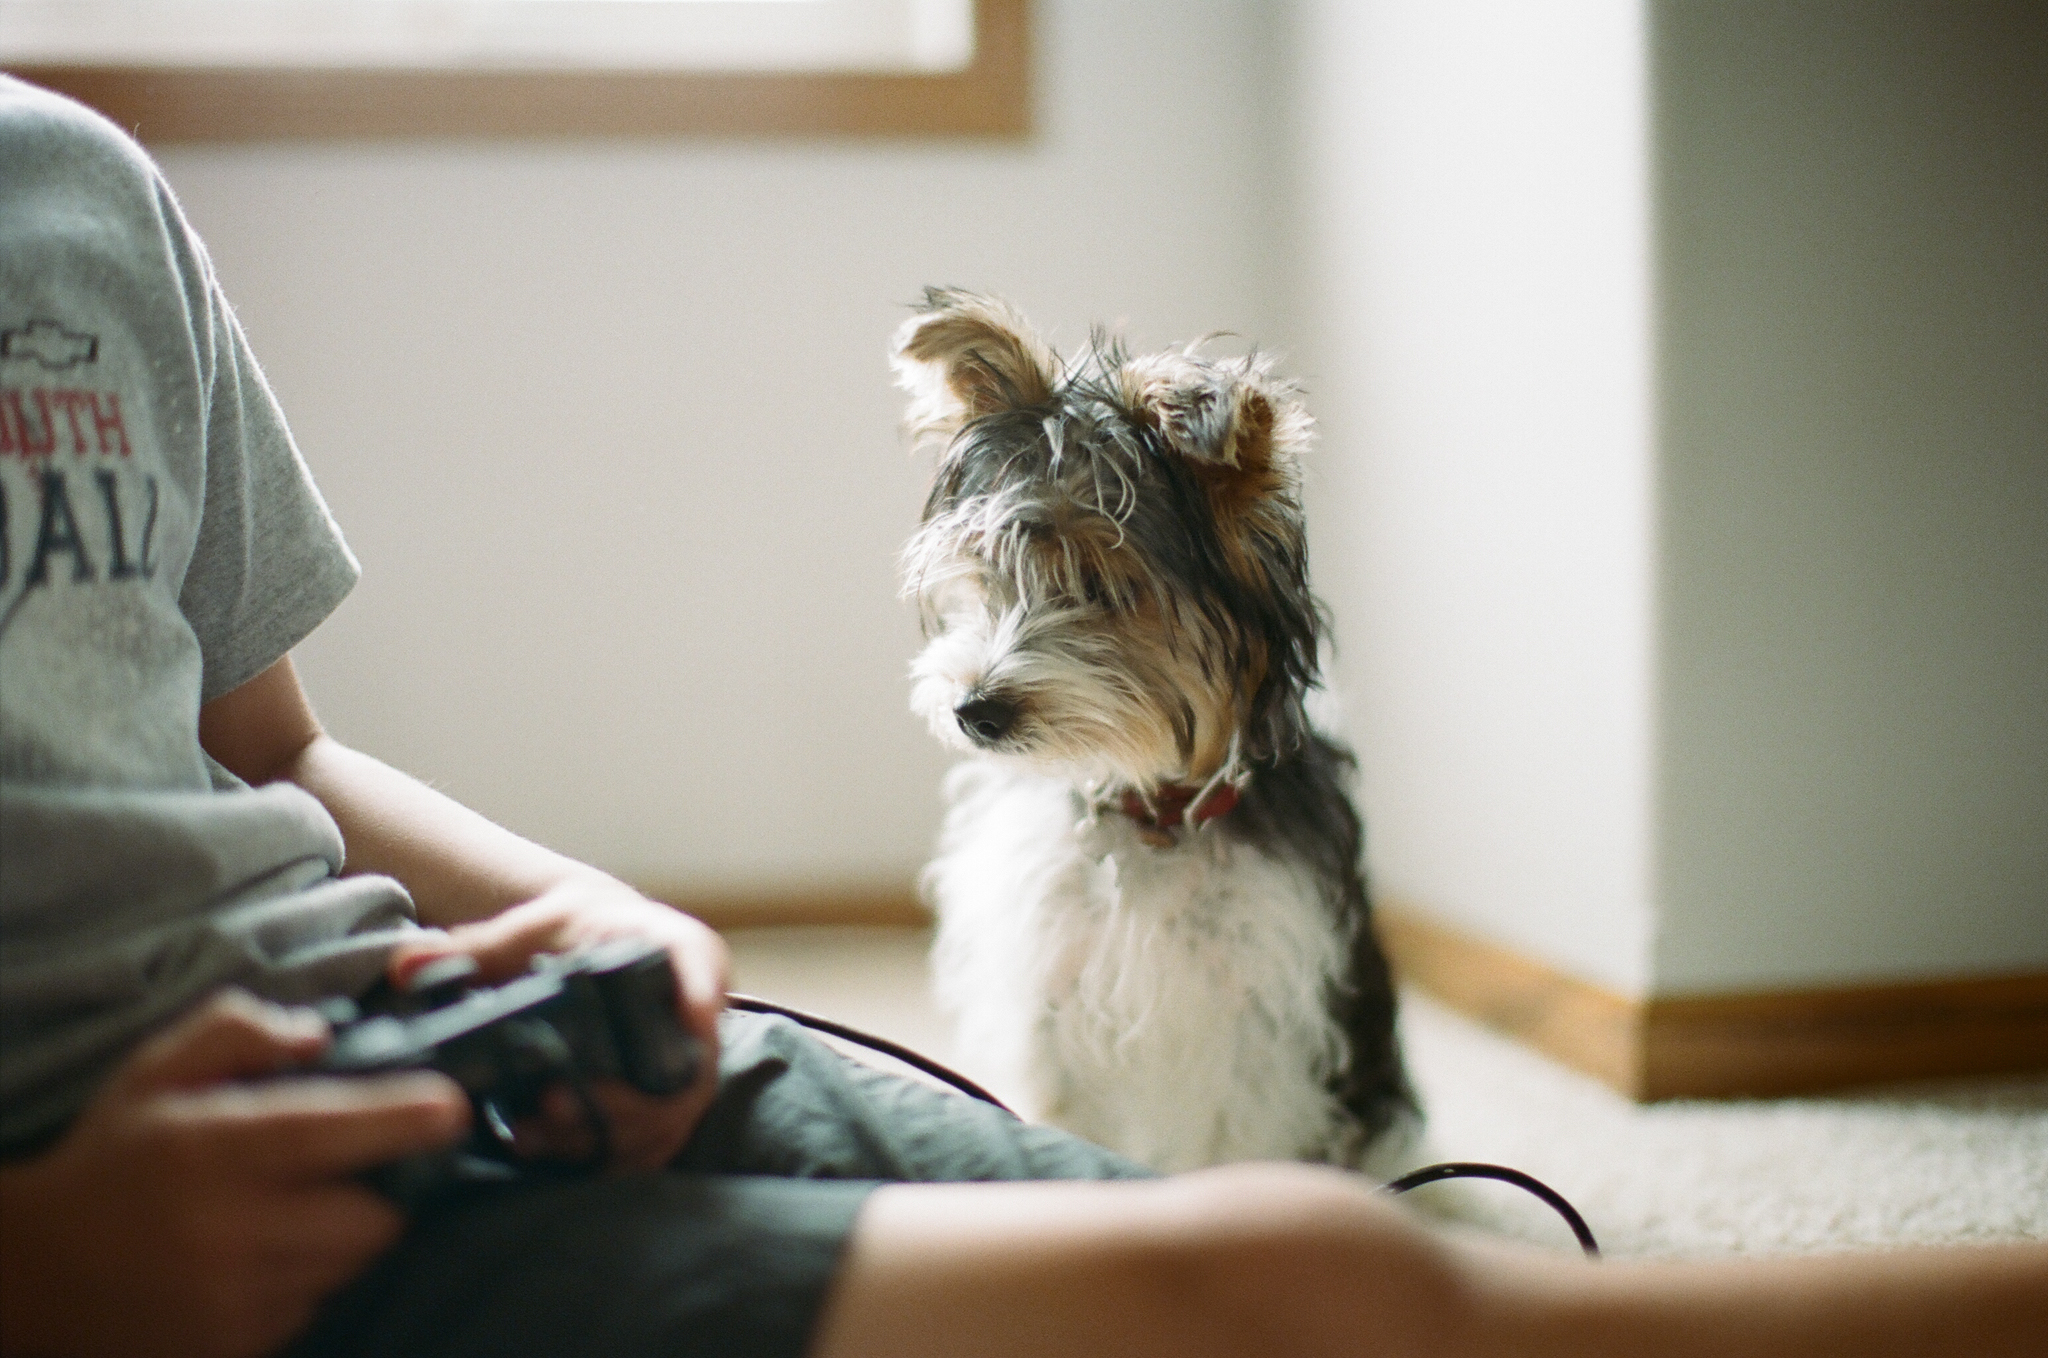 Boy and puppy gaming